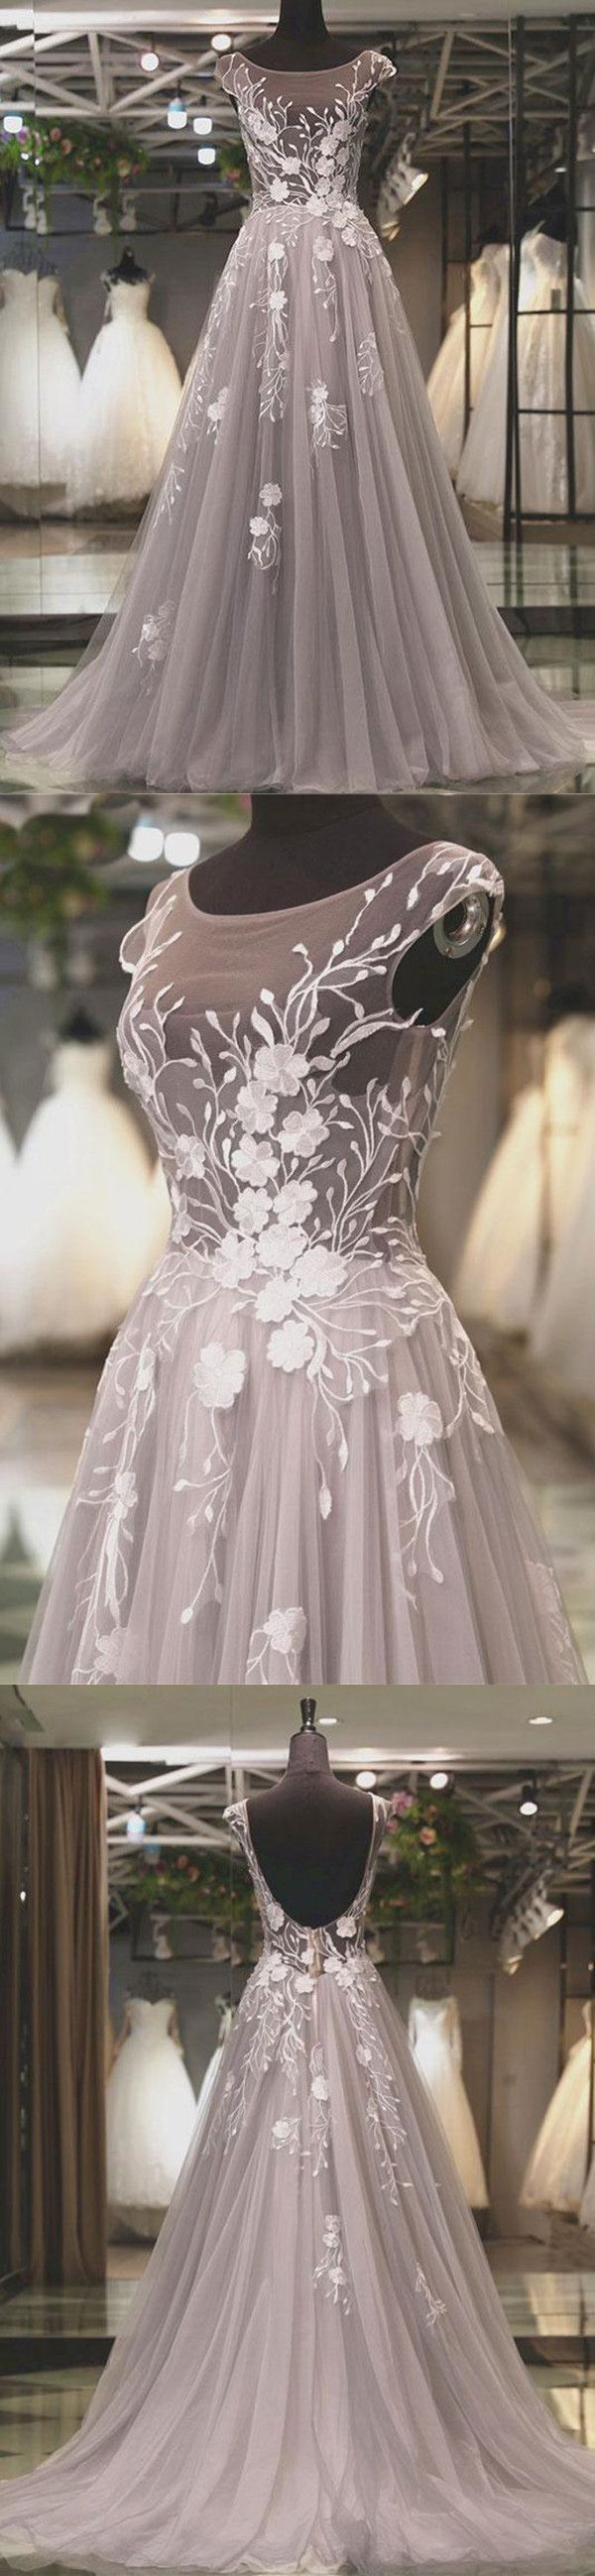 chic a line prom dress silver cheap long prom dress vb in